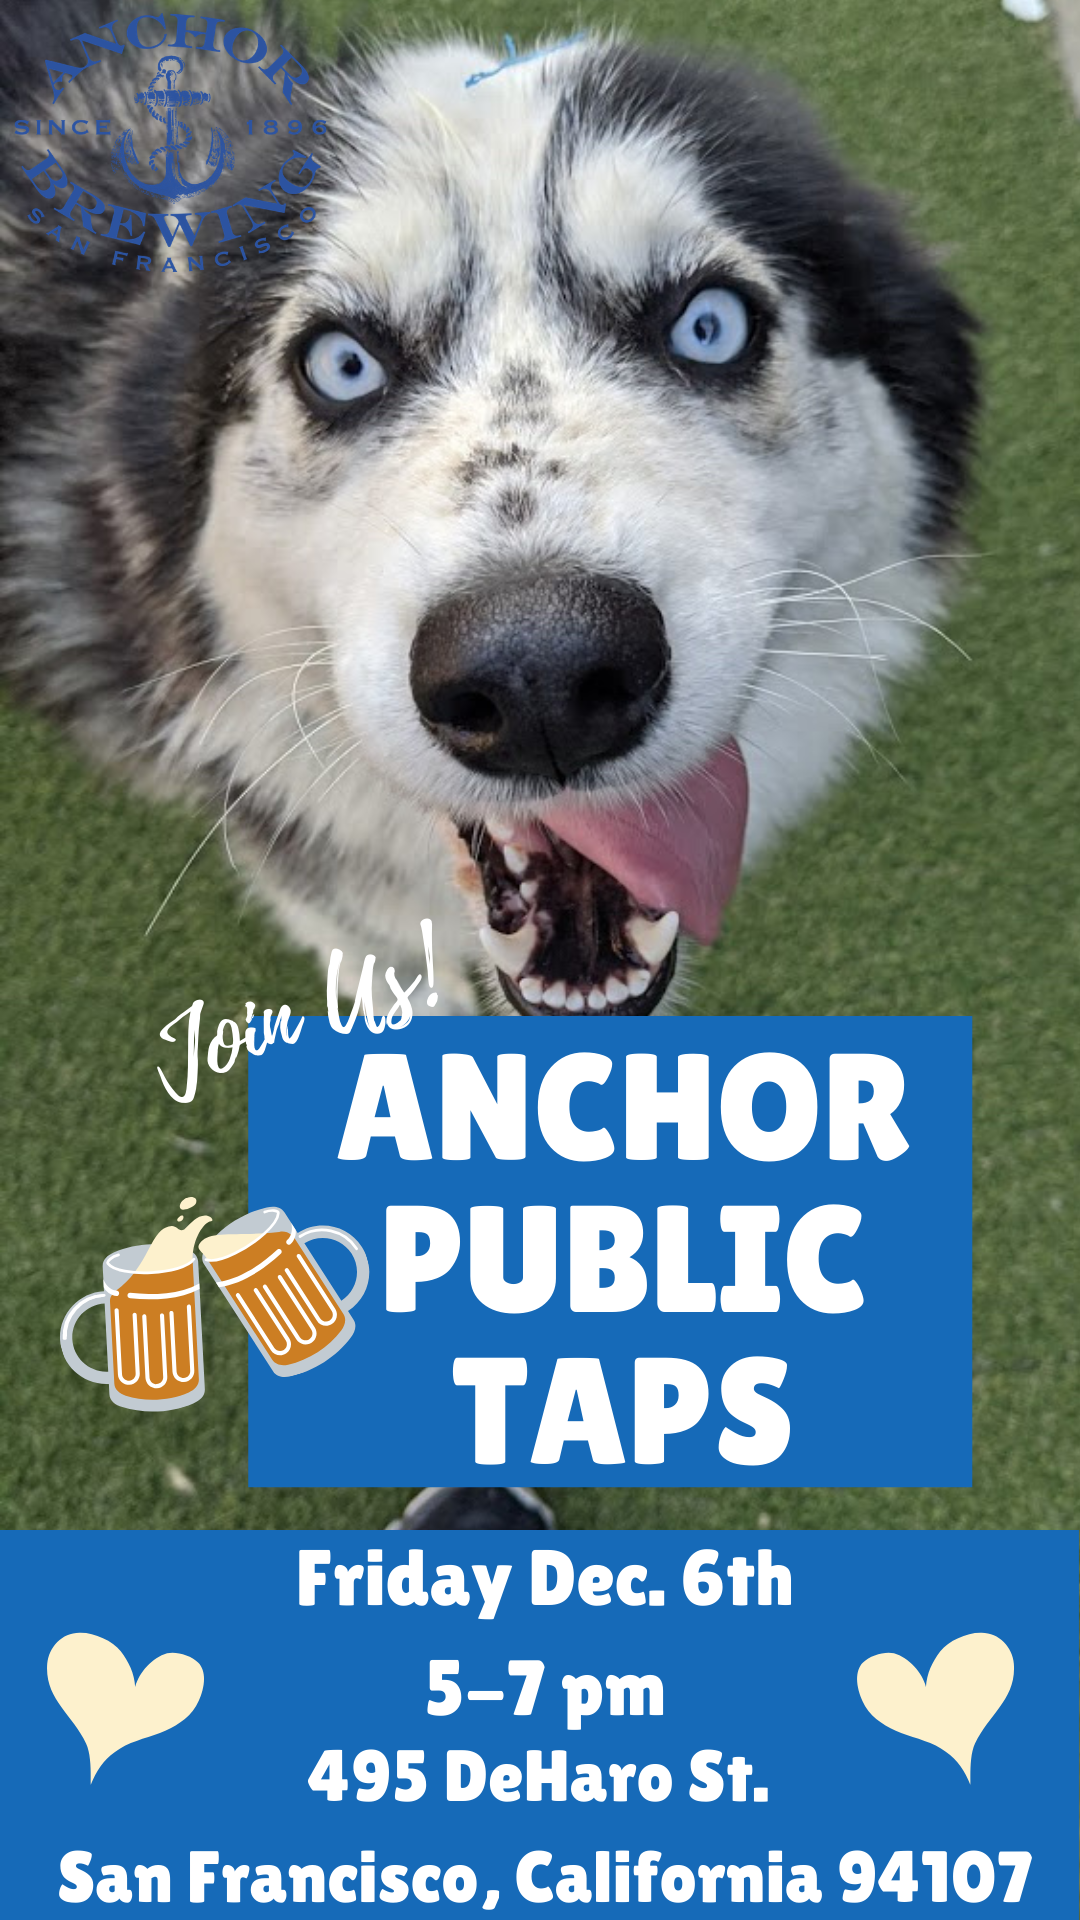 Adoption Event at Anchor Public Taps! @ Anchor Public Taps